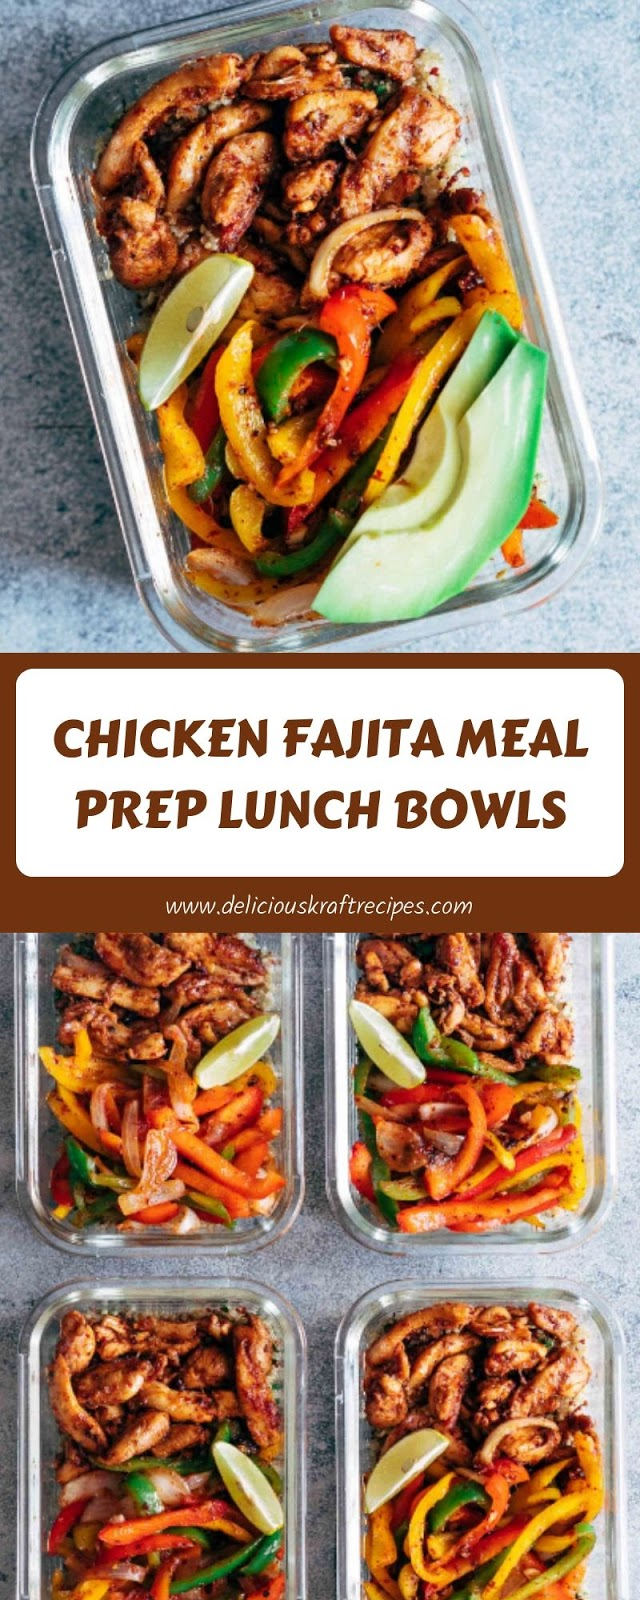 CHICKEN FAJITA MEAL PREP LUNCH BOWLS